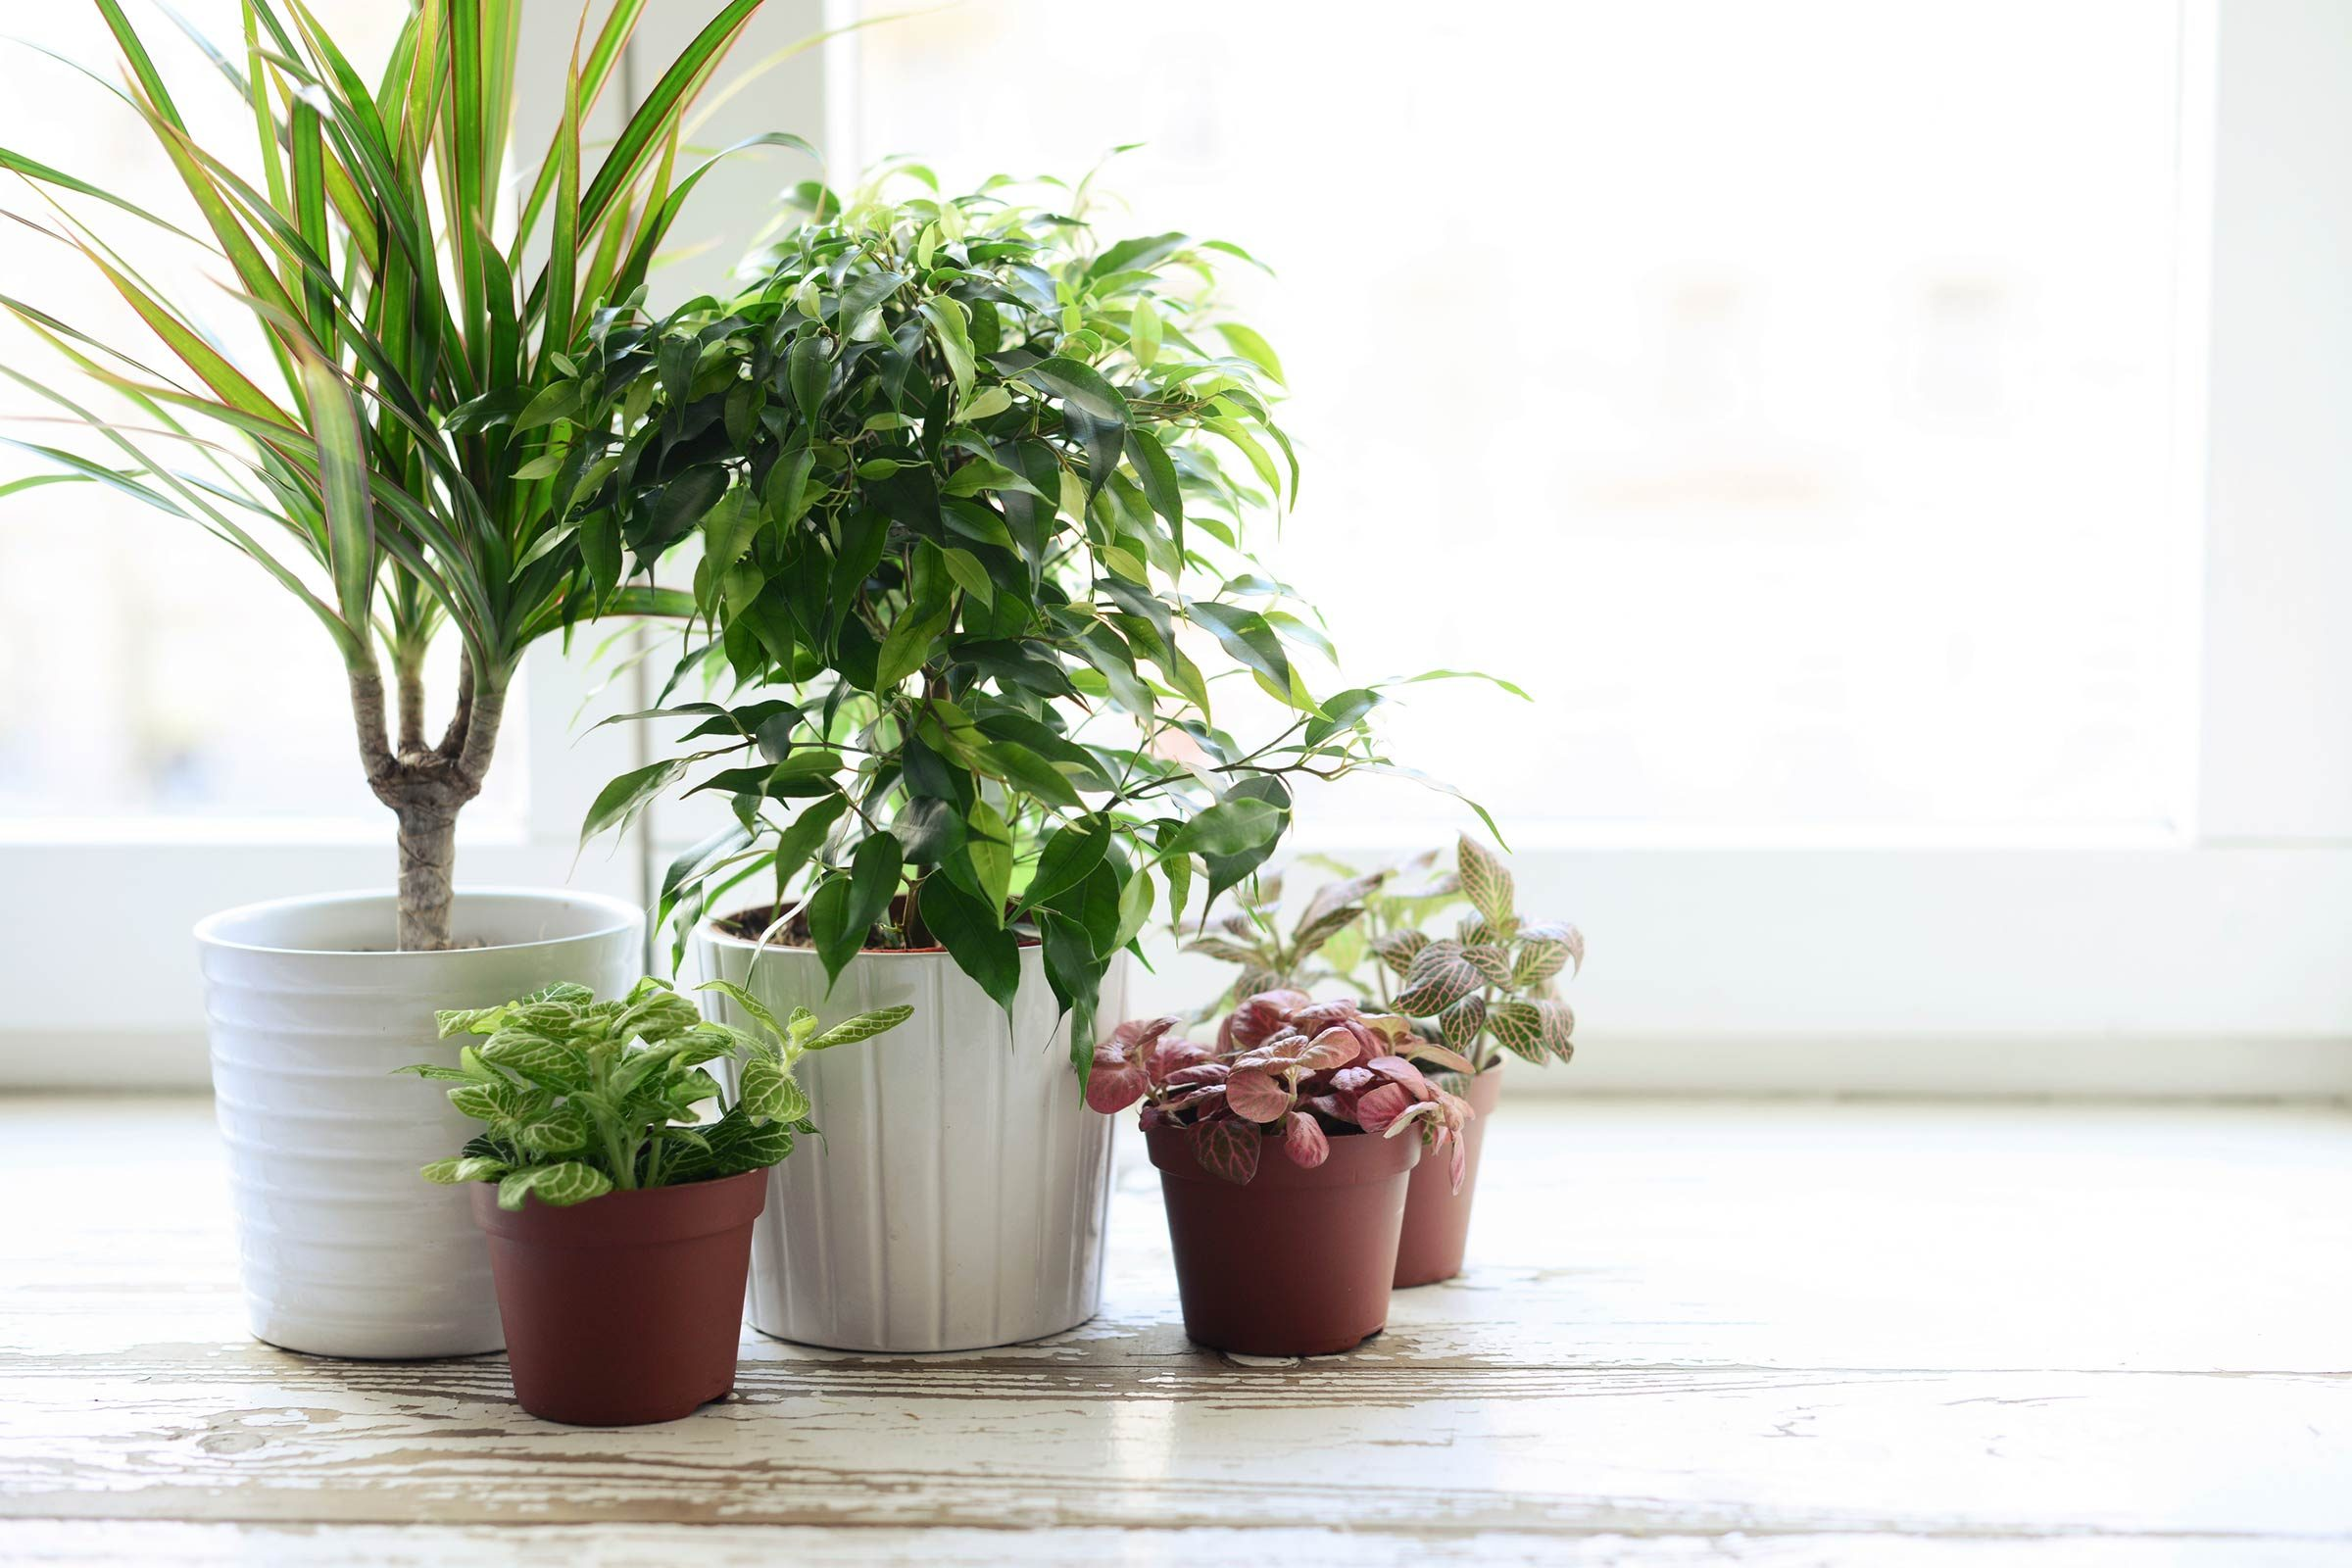 Design Big Indoor Plants growing plants indoors 29 tips for houseplants readers digest you dont have to repot big as often small ones